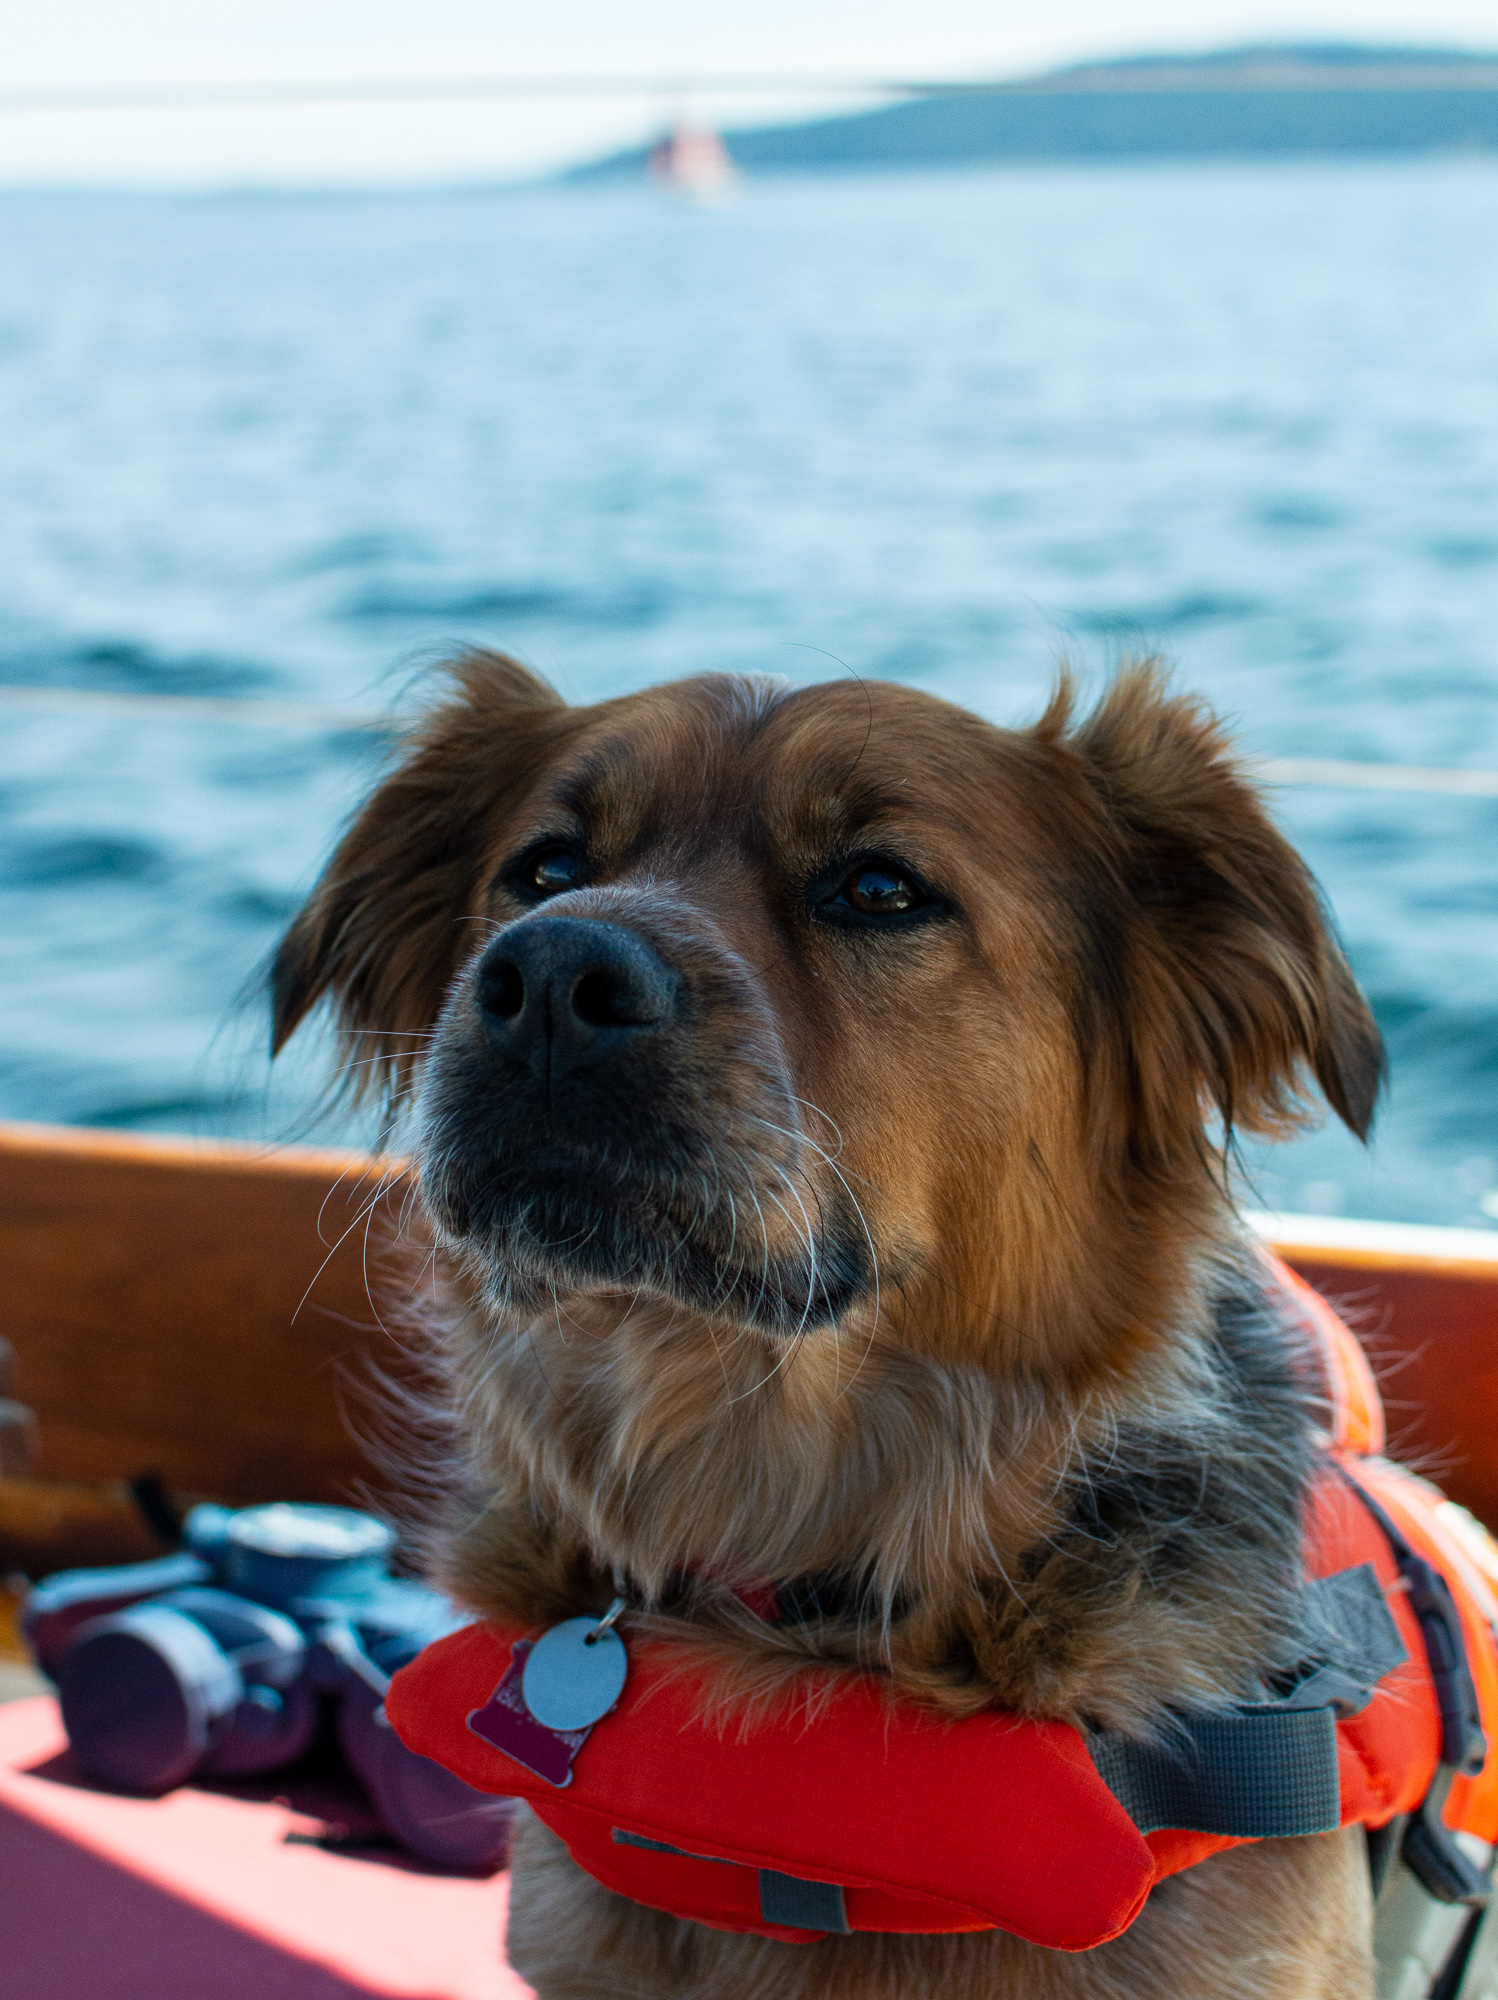 No matter how salty a dog you think you are wear that PFD